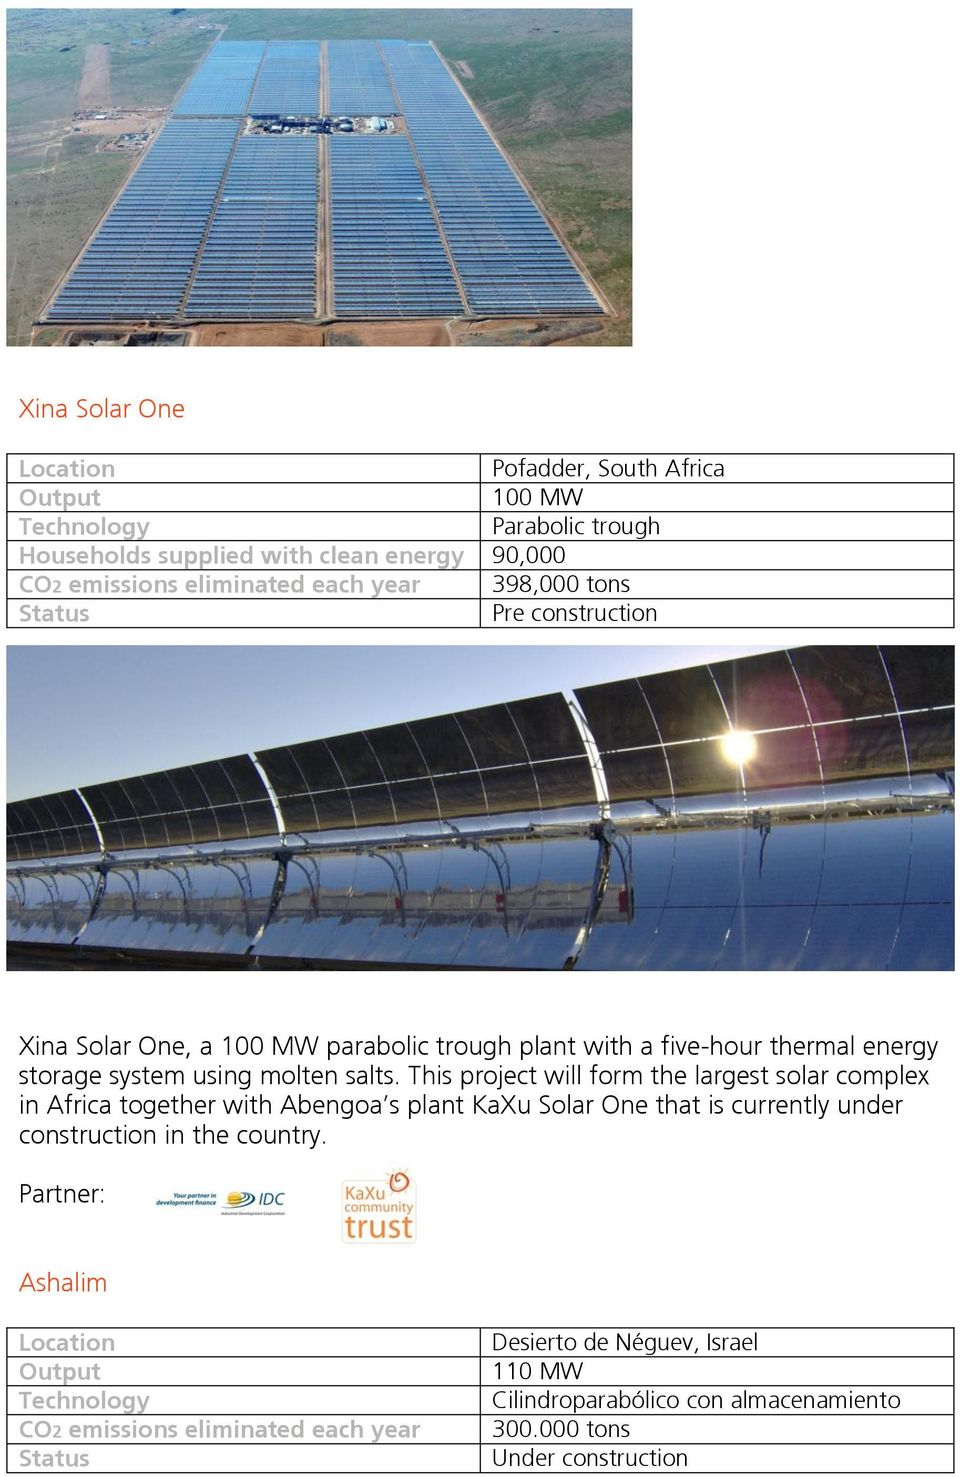 This project will form the largest solar complex in Africa together with Abengoa s plant KaXu Solar One that is currently